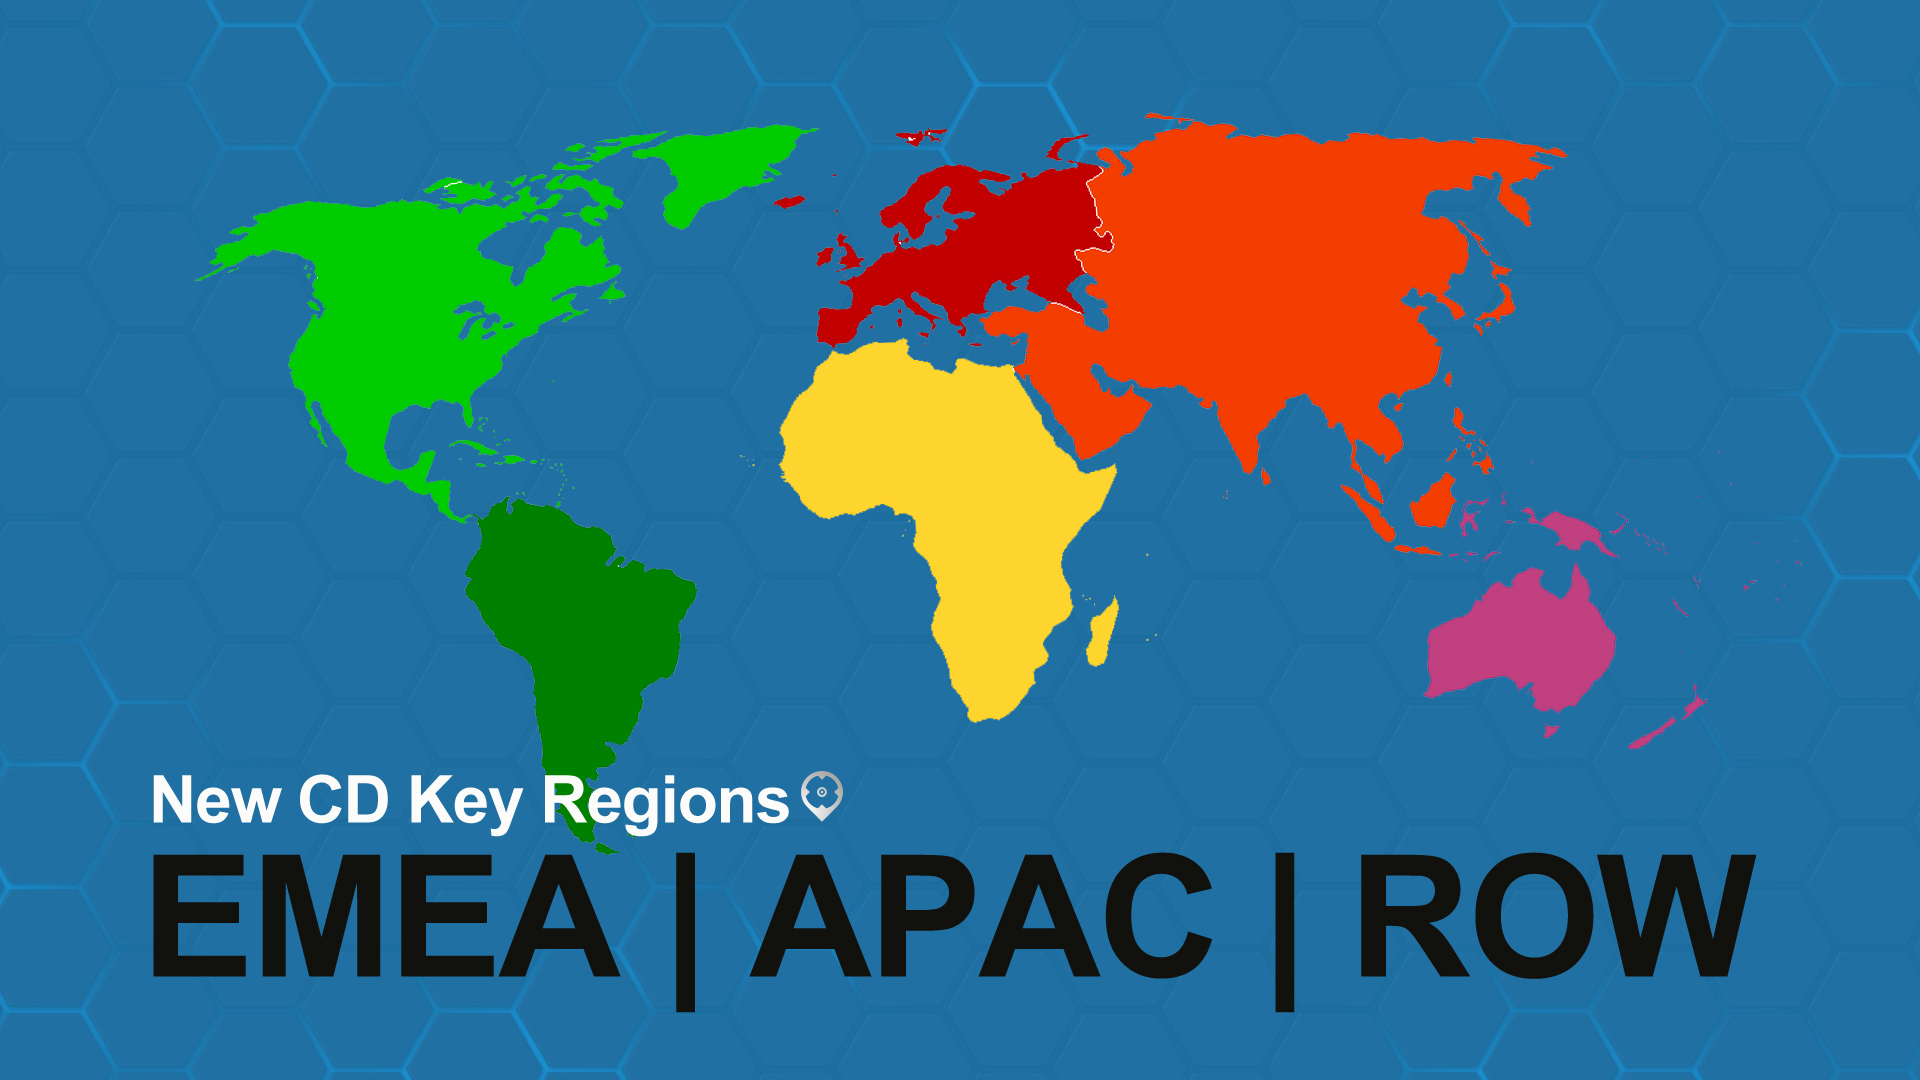 EMEA, APAC, and RoW Are Our New CD Key Regions Cover